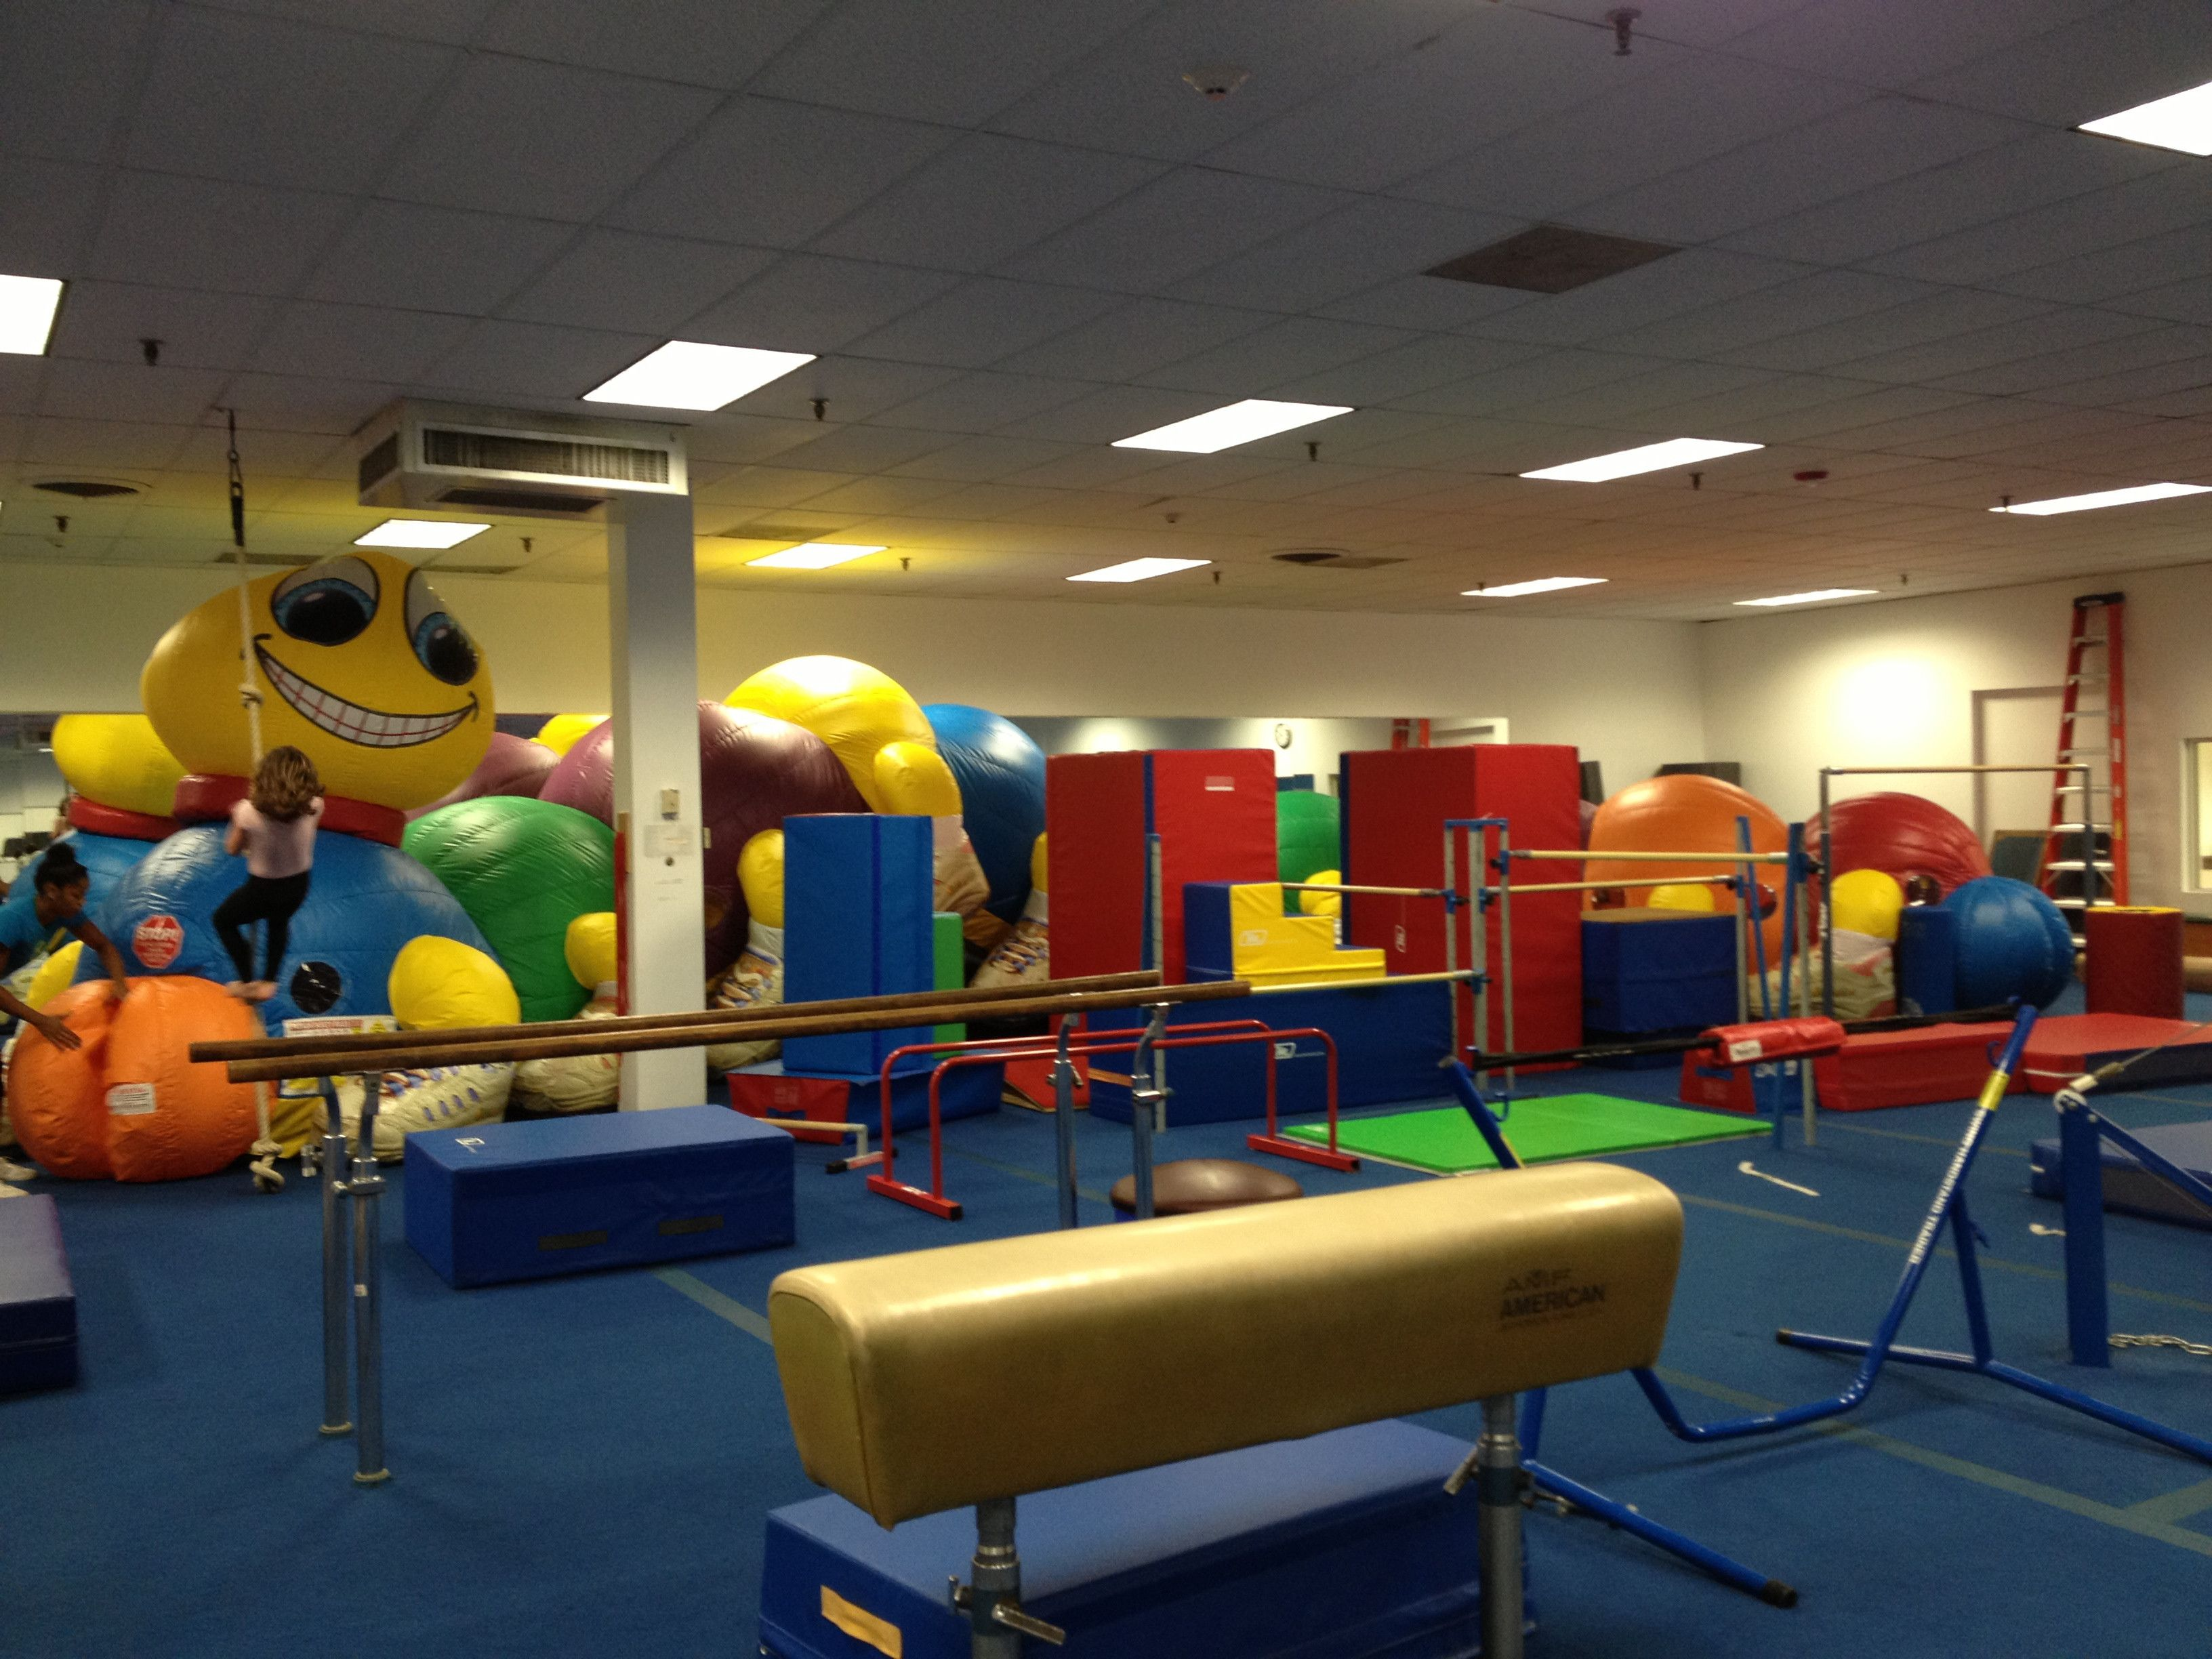 Kids Birthday Party Places Energy Fitness The Best Ideas For Places To Have Kids Kids Birthday Party Places Birthday Party Places Winter Kids Birthday Parties